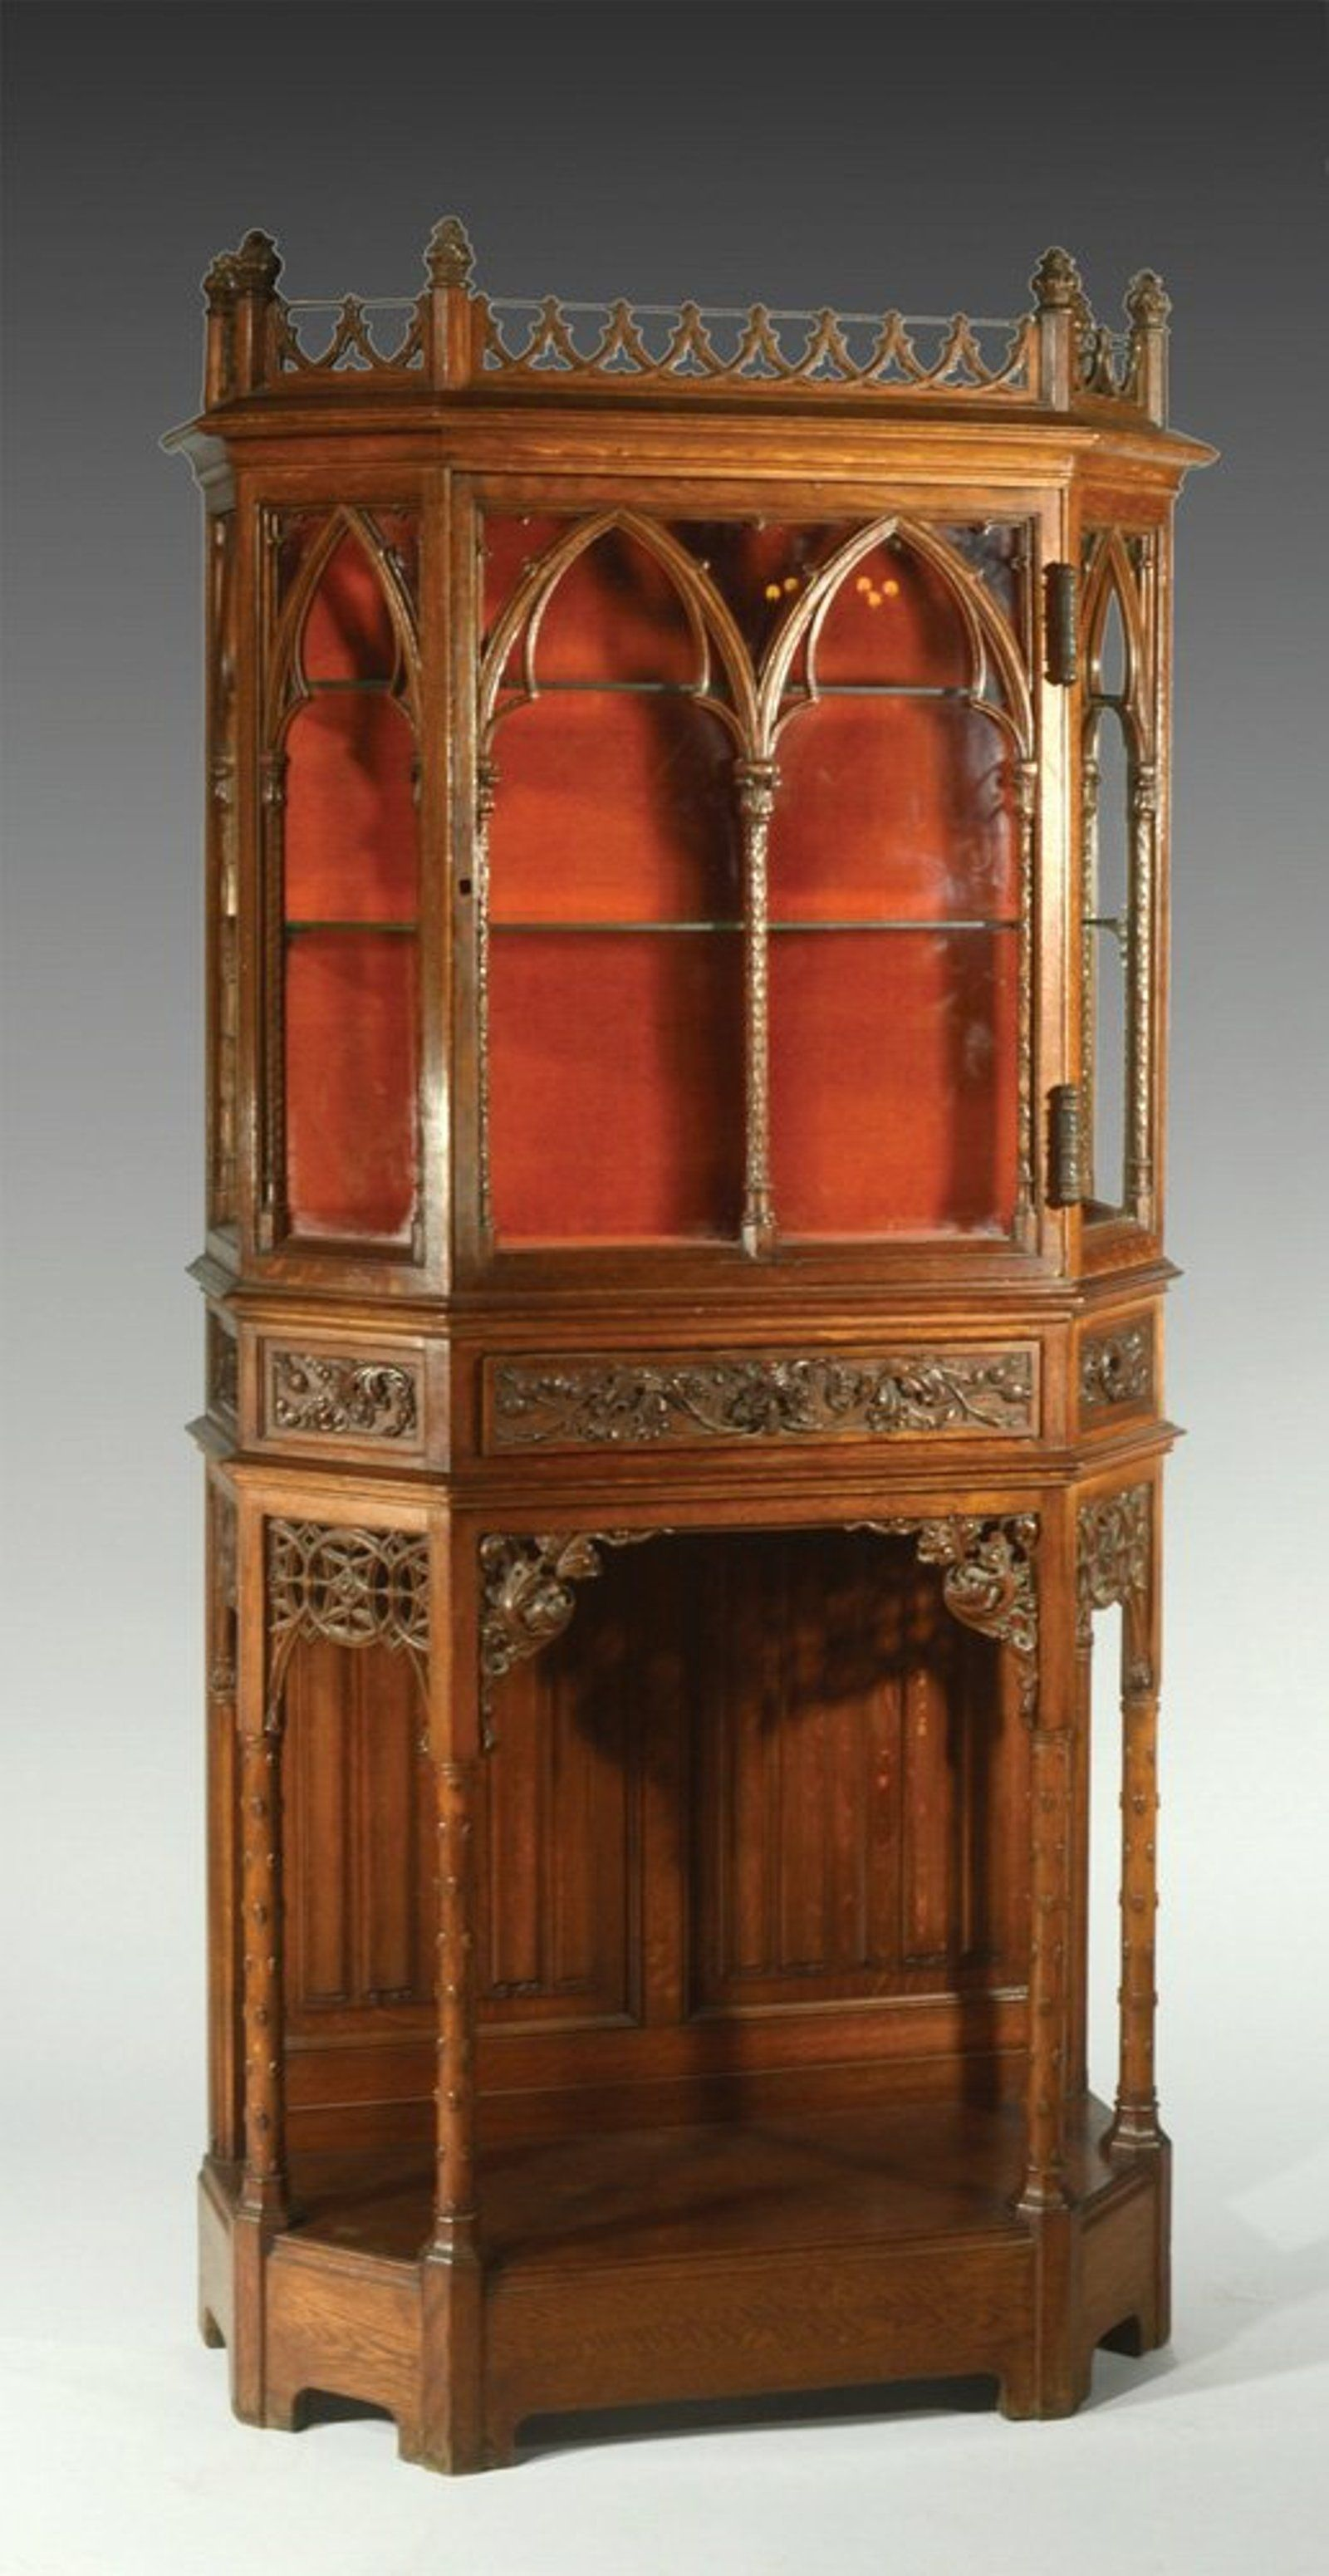 A French Neo Gothic Display Cabinet Gothic Display Display Cabinet English Furniture Style